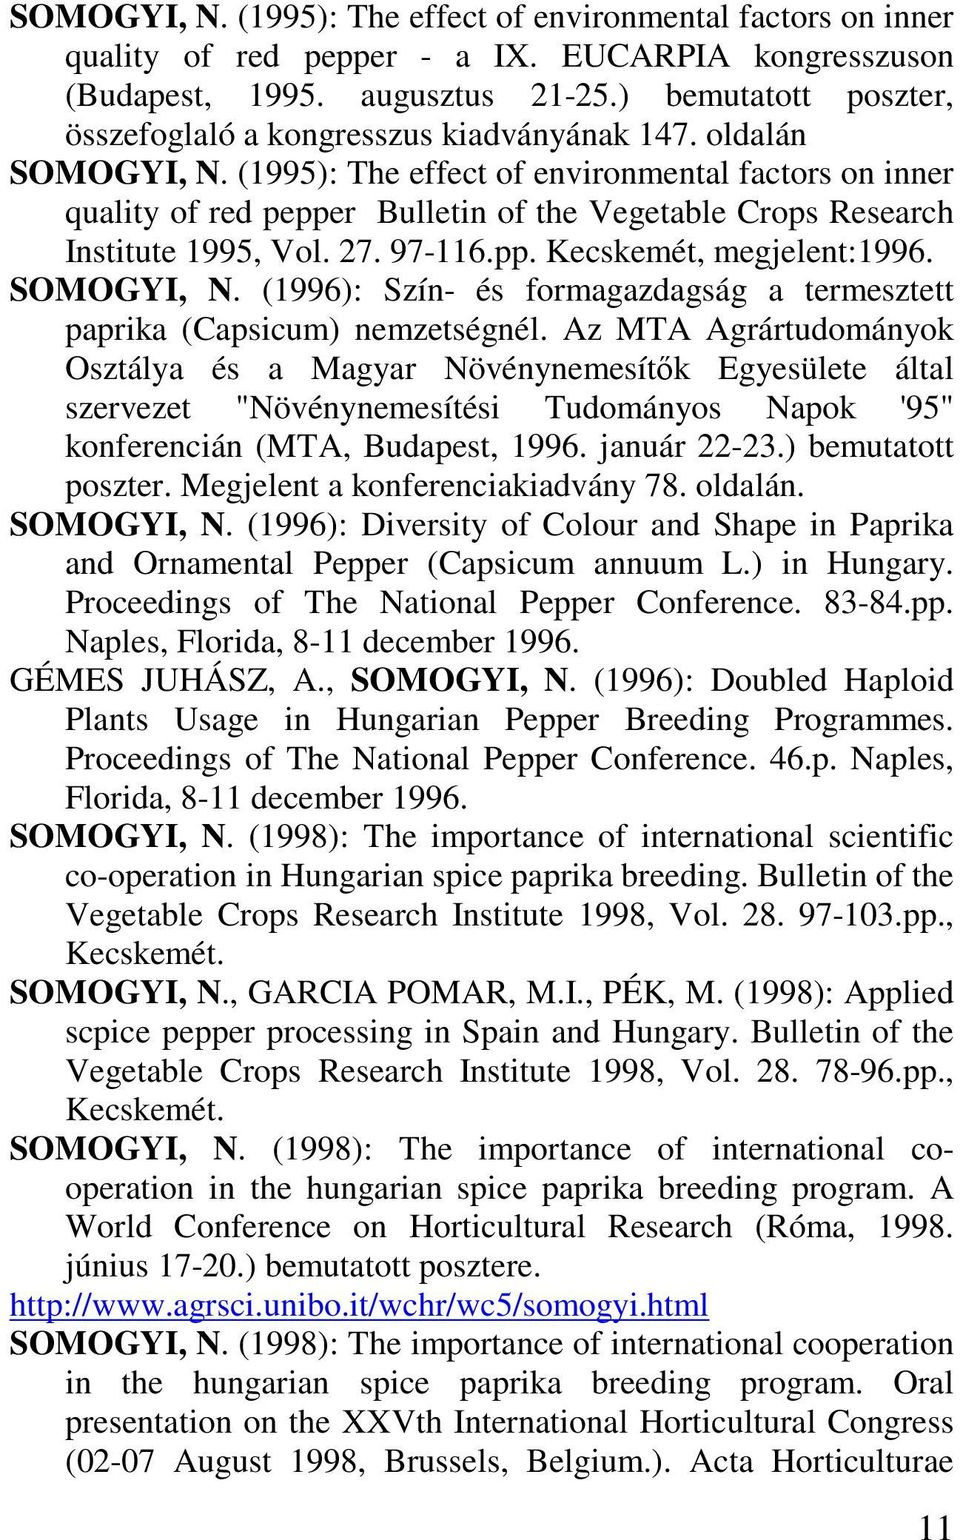 (1995): The effect of environmental factors on inner quality of red pepper Bulletin of the Vegetable Crops Research Institute 1995, Vol. 27. 97-116.pp. Kecskemét, megjelent:1996. SOMOGYI, N.